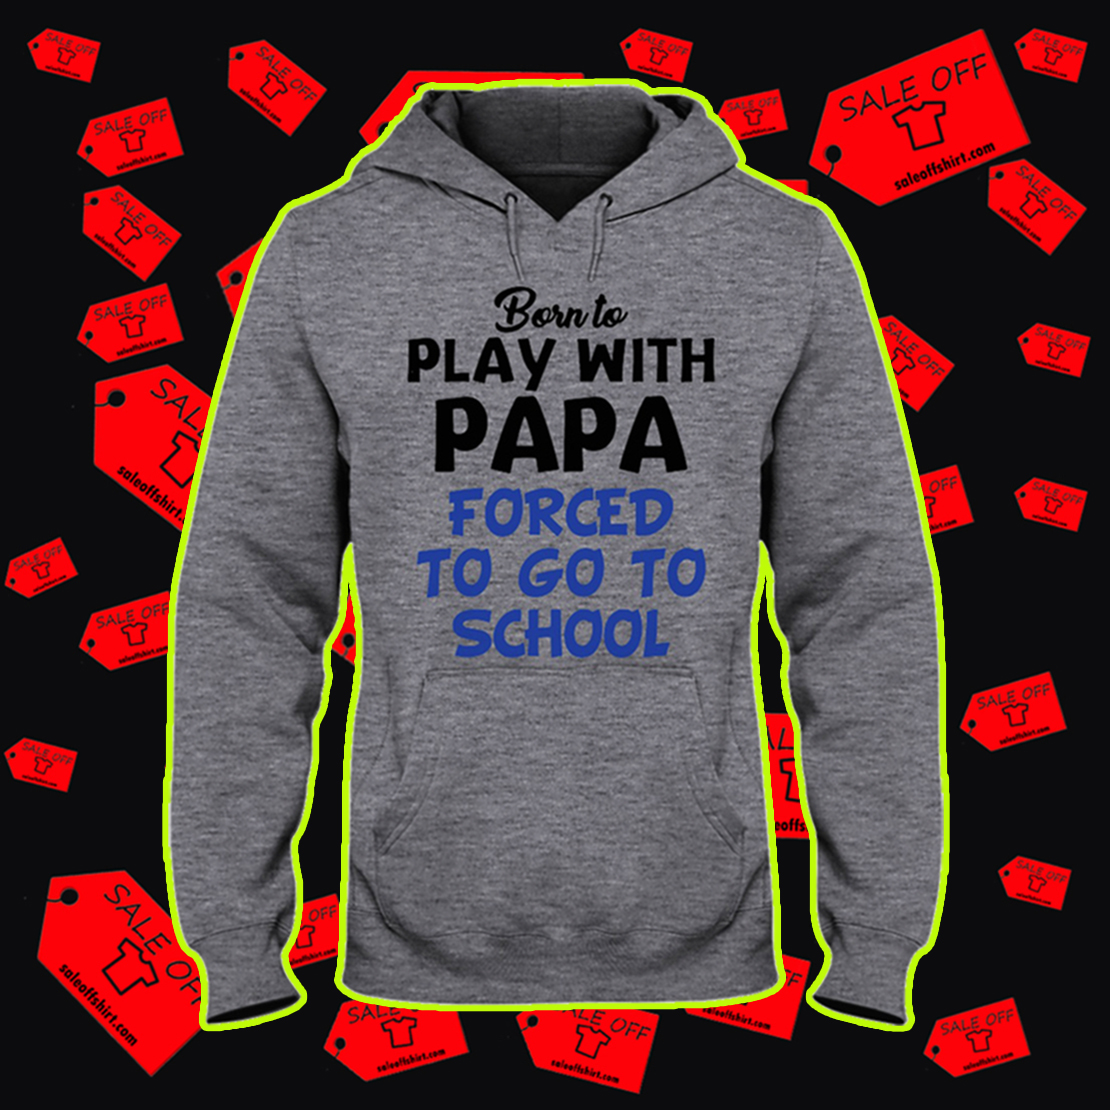 Born to play with papa forced to go to school hooded sweatshirt